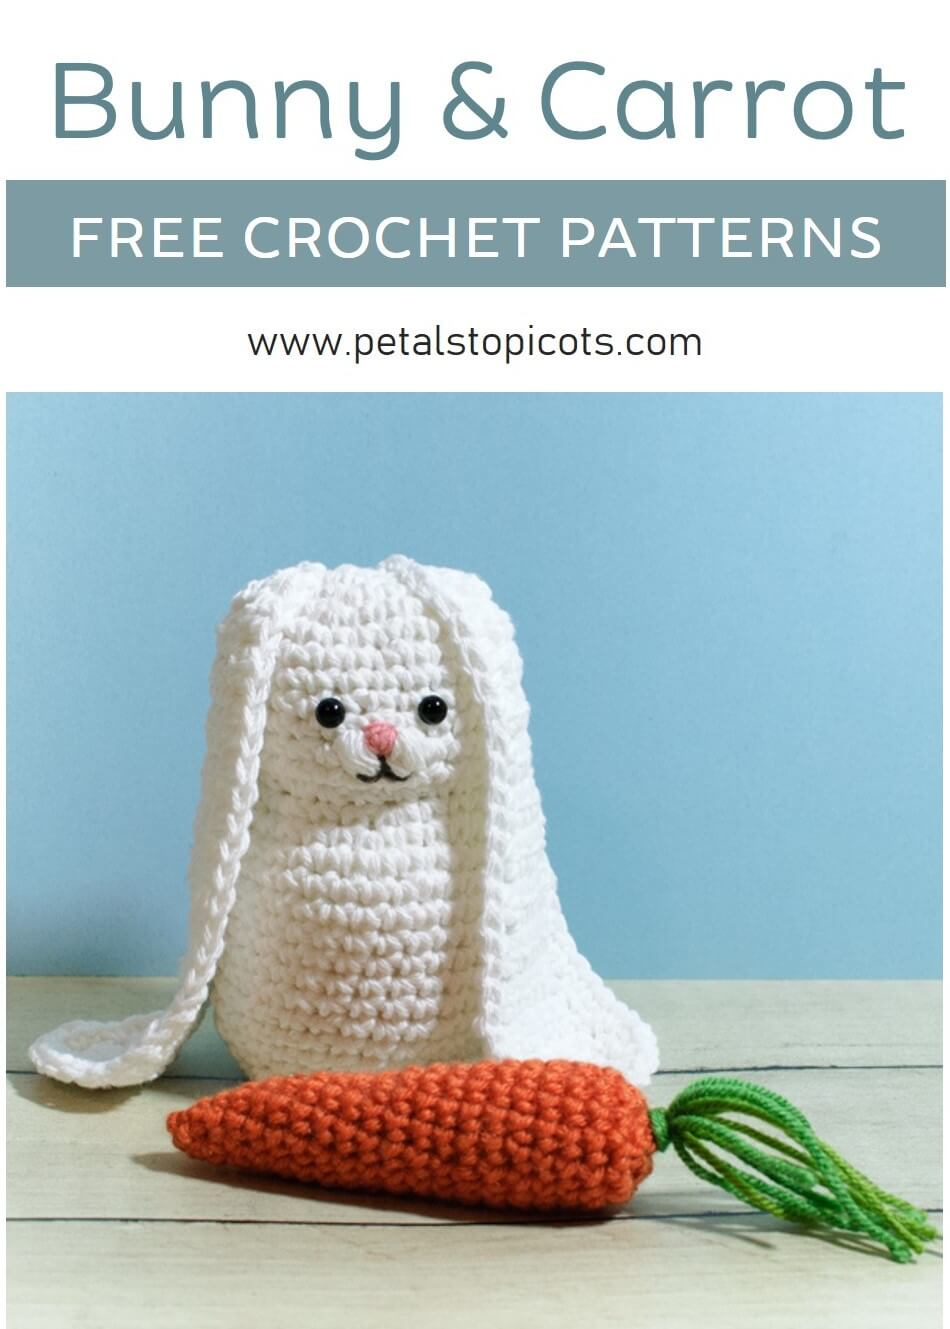 Crochet Bunny and Carrot Patterns